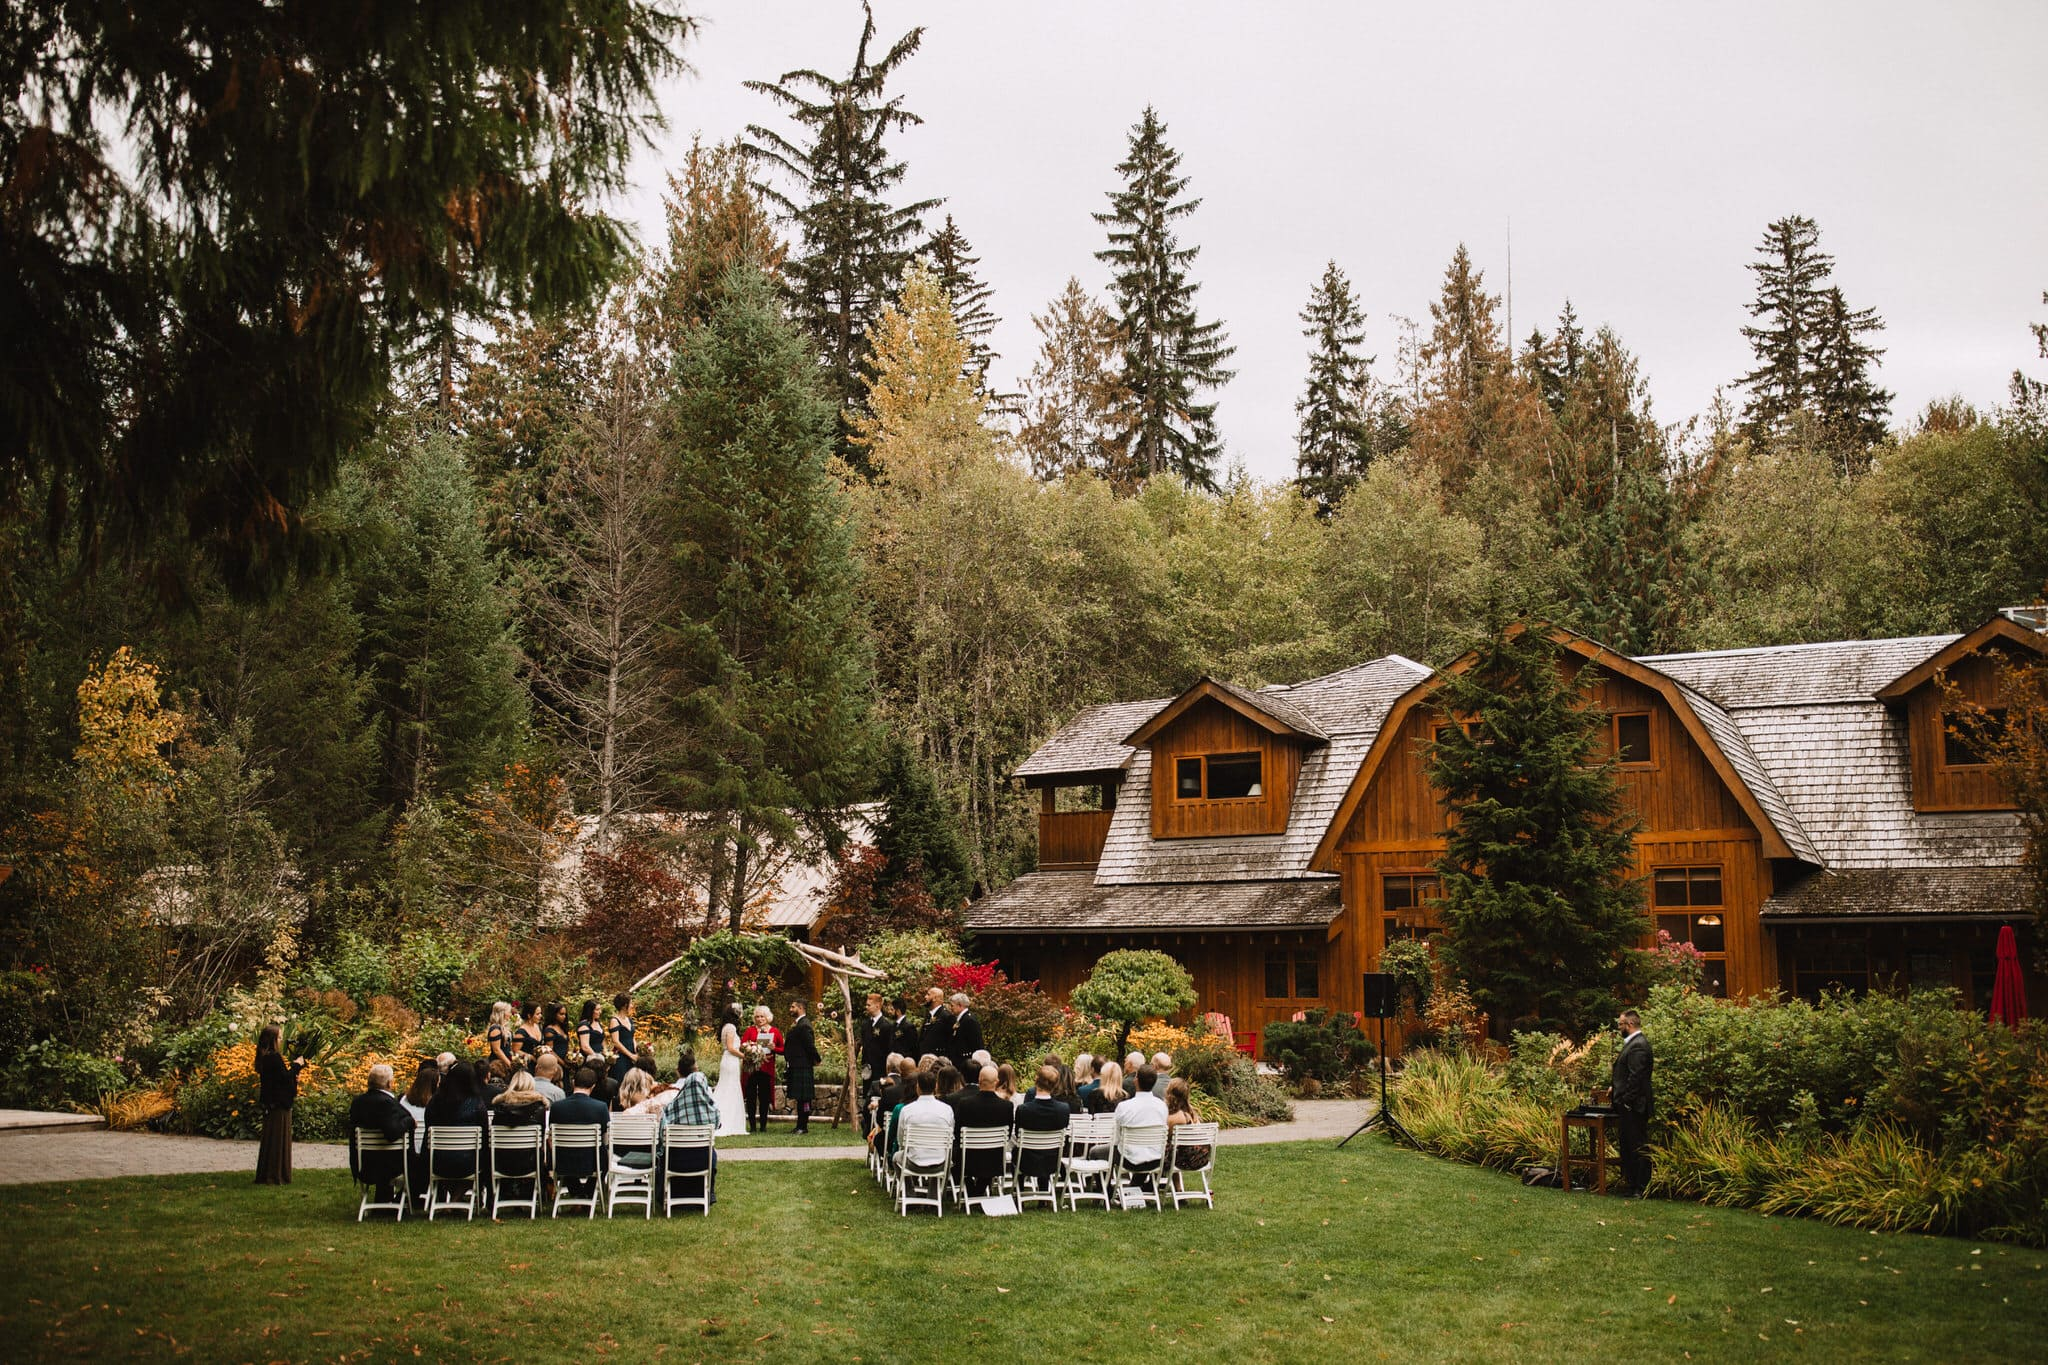 Forest wedding in the moutains at The Brew Creek Centre in Whistler. Destination wedding photographer Brent Calis.